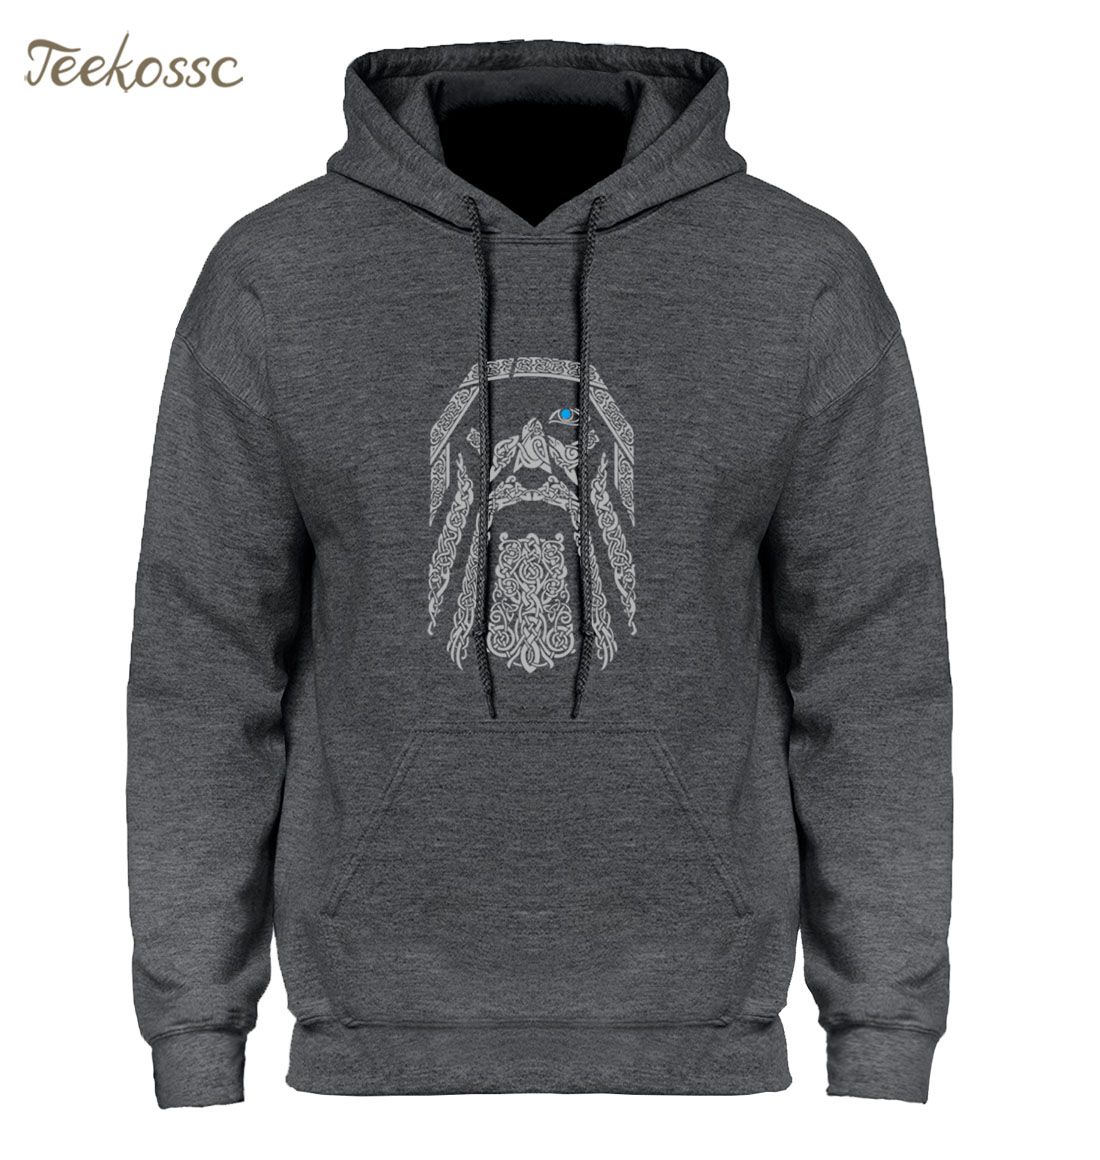 Vikings Odin personalizado Homens Hoodie Vintage Hoodies Sweatshirt Men New Winter Autumn Hooded Hoody Unique Gifts Father's Day